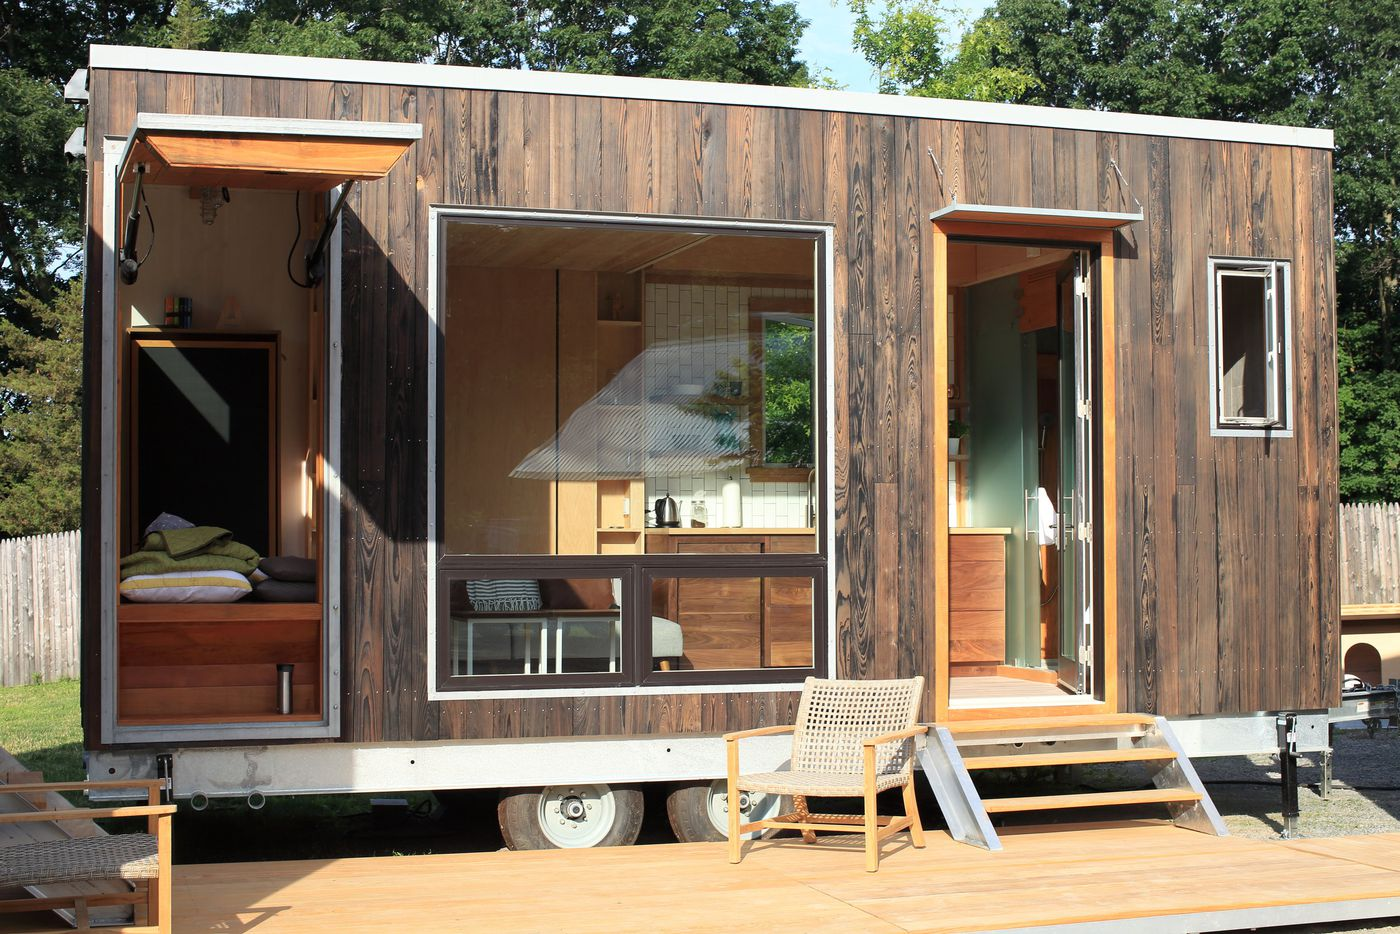 Best tiny houses you can buy right now - Curbed Mobile Tiny Houses For Sale on tiny mobile house plans, tiny mobile house designs, tiny mobile home,